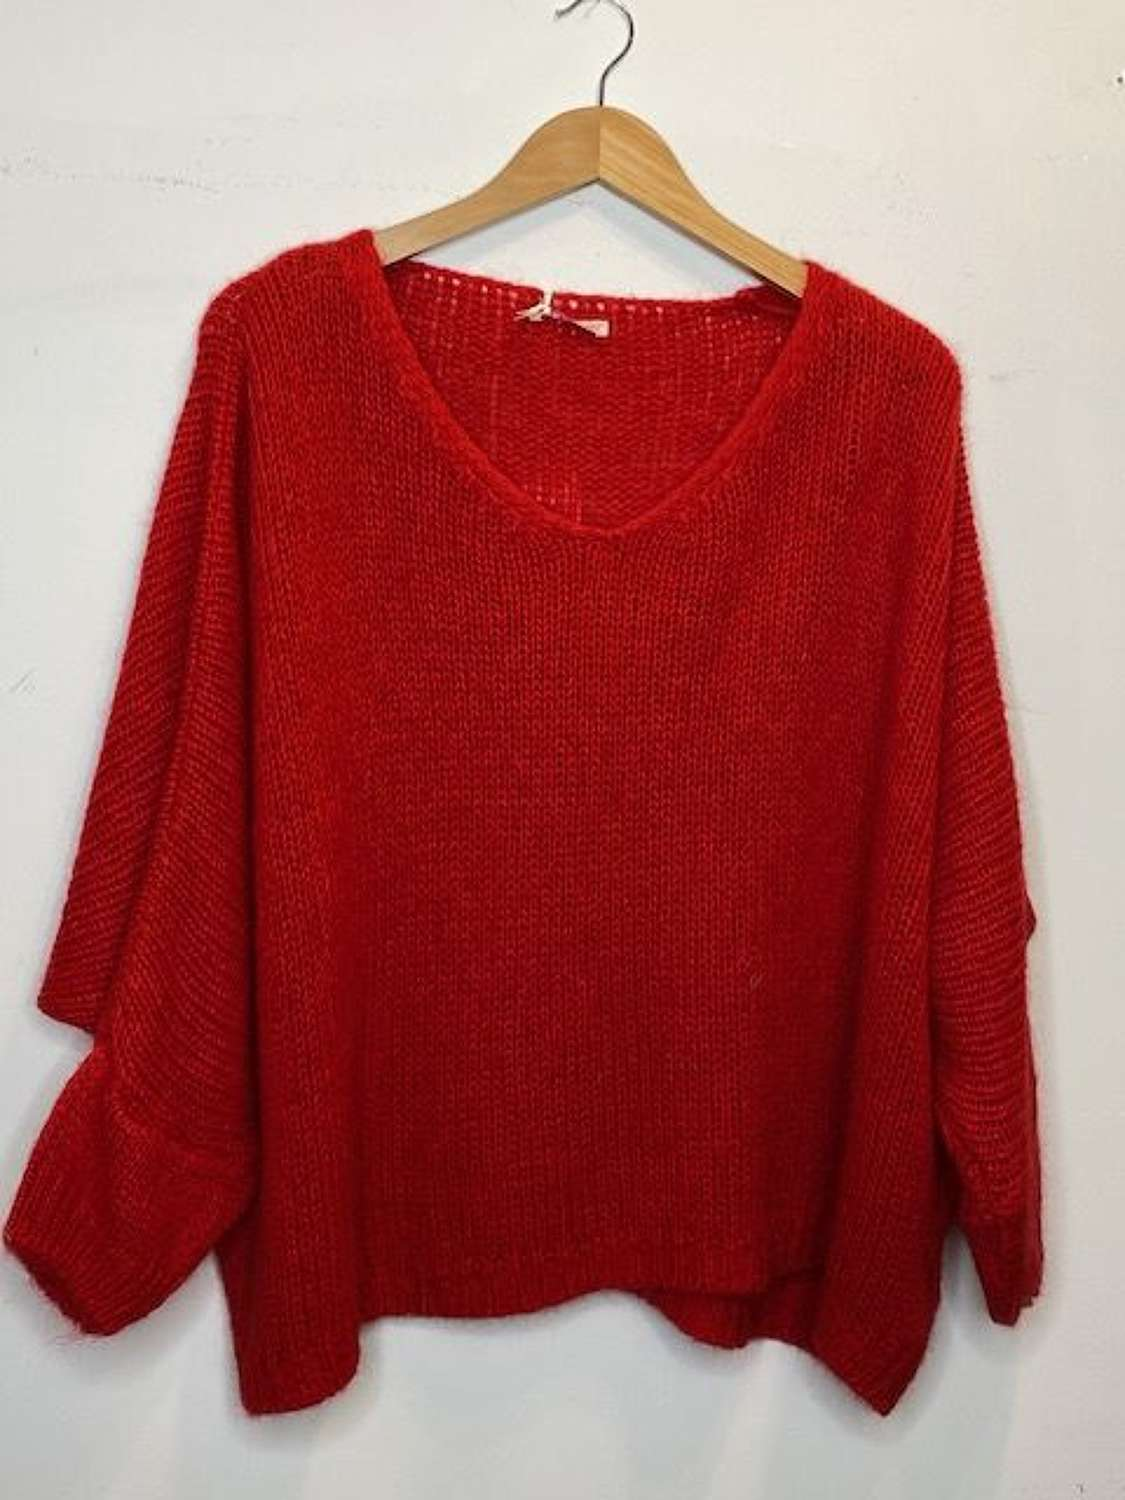 Super soft chunky knit jumper - SALE